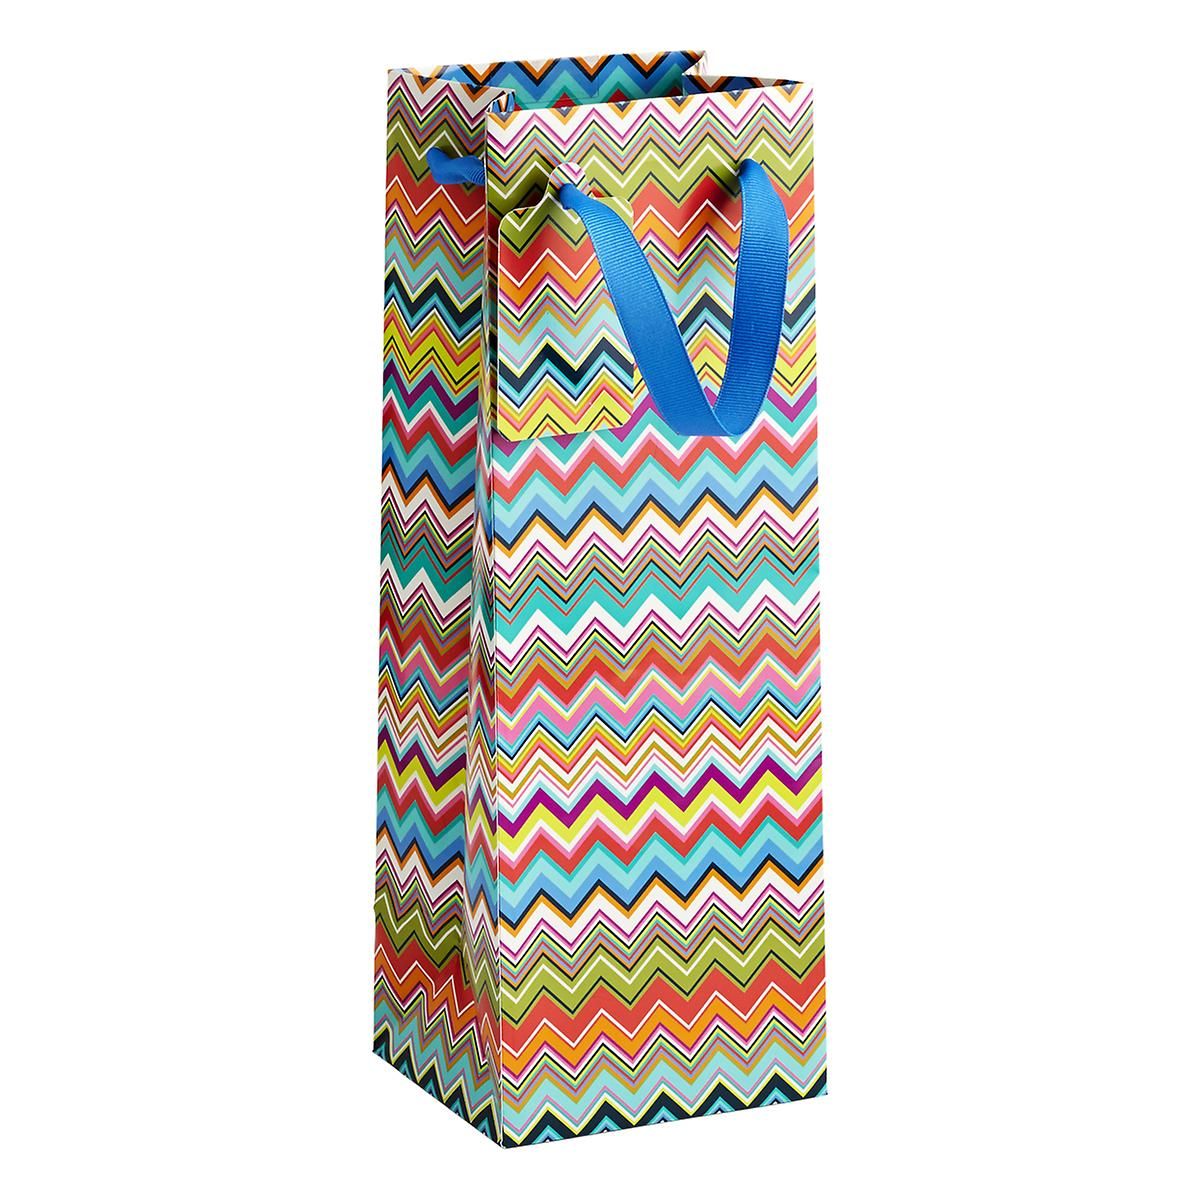 Ziggy Chevron Bottle Tote